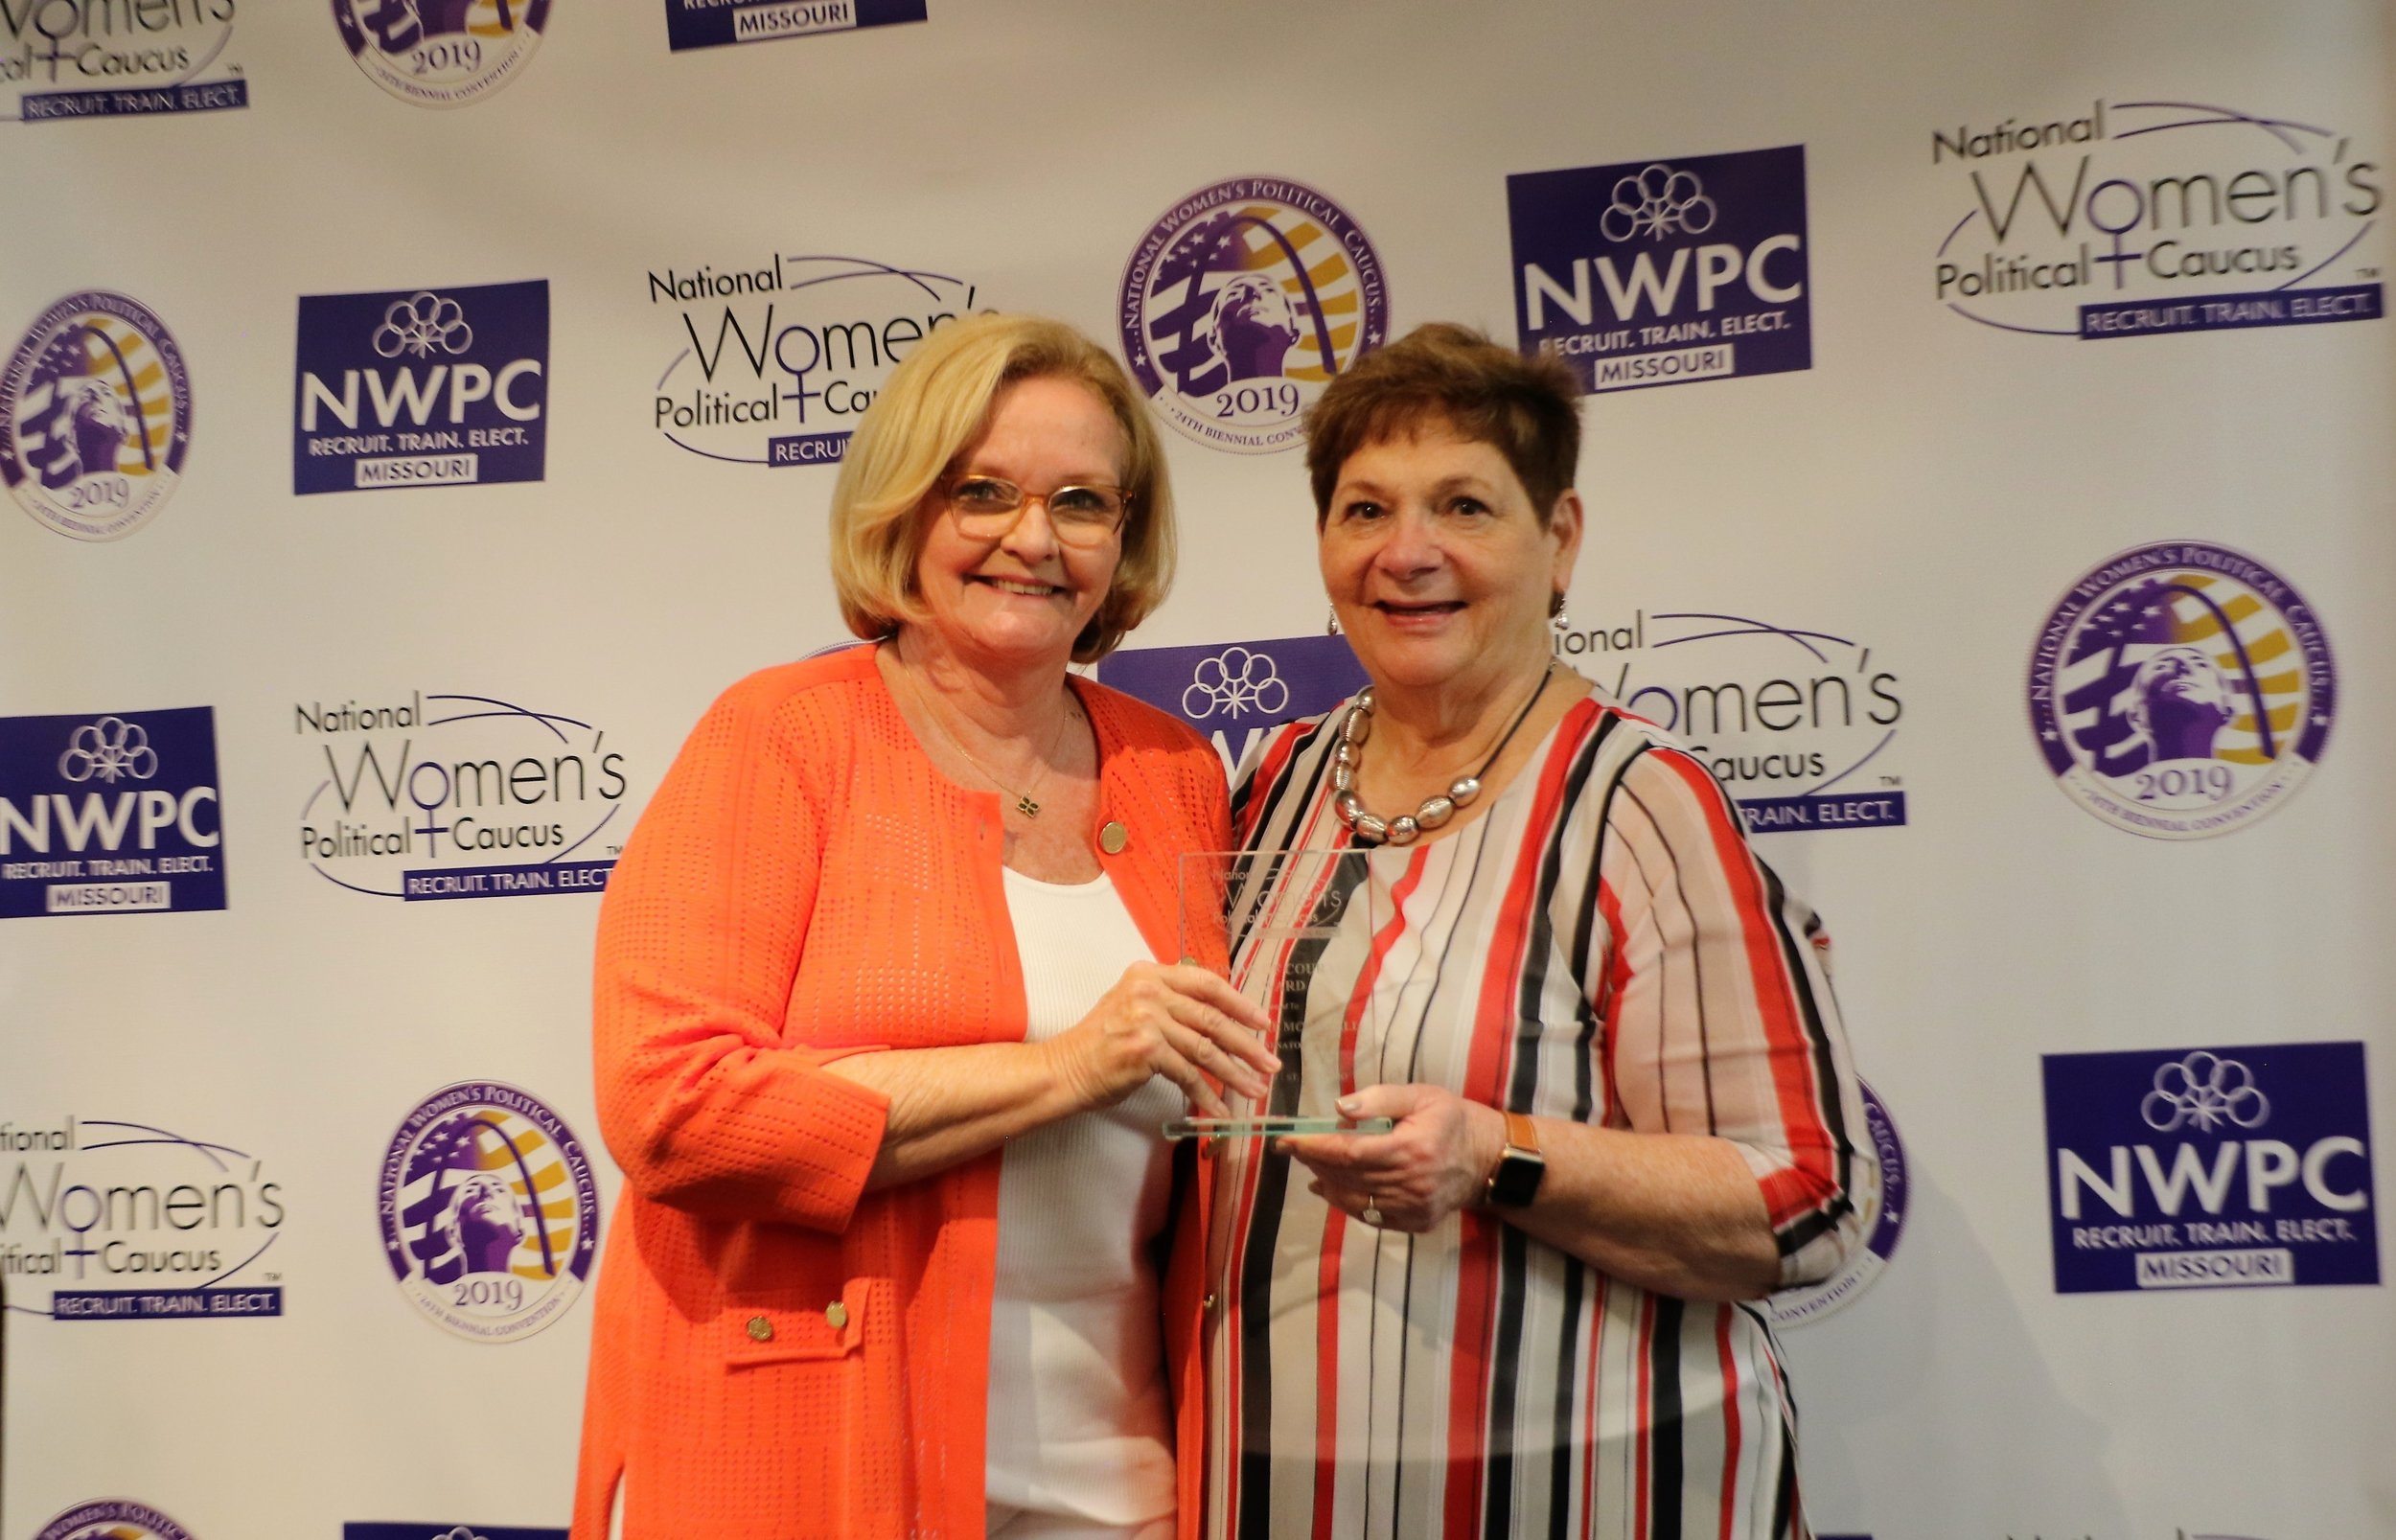 Women of Courage Award presented to Senator Claire McCaskill by NWPC President Donna Lent -